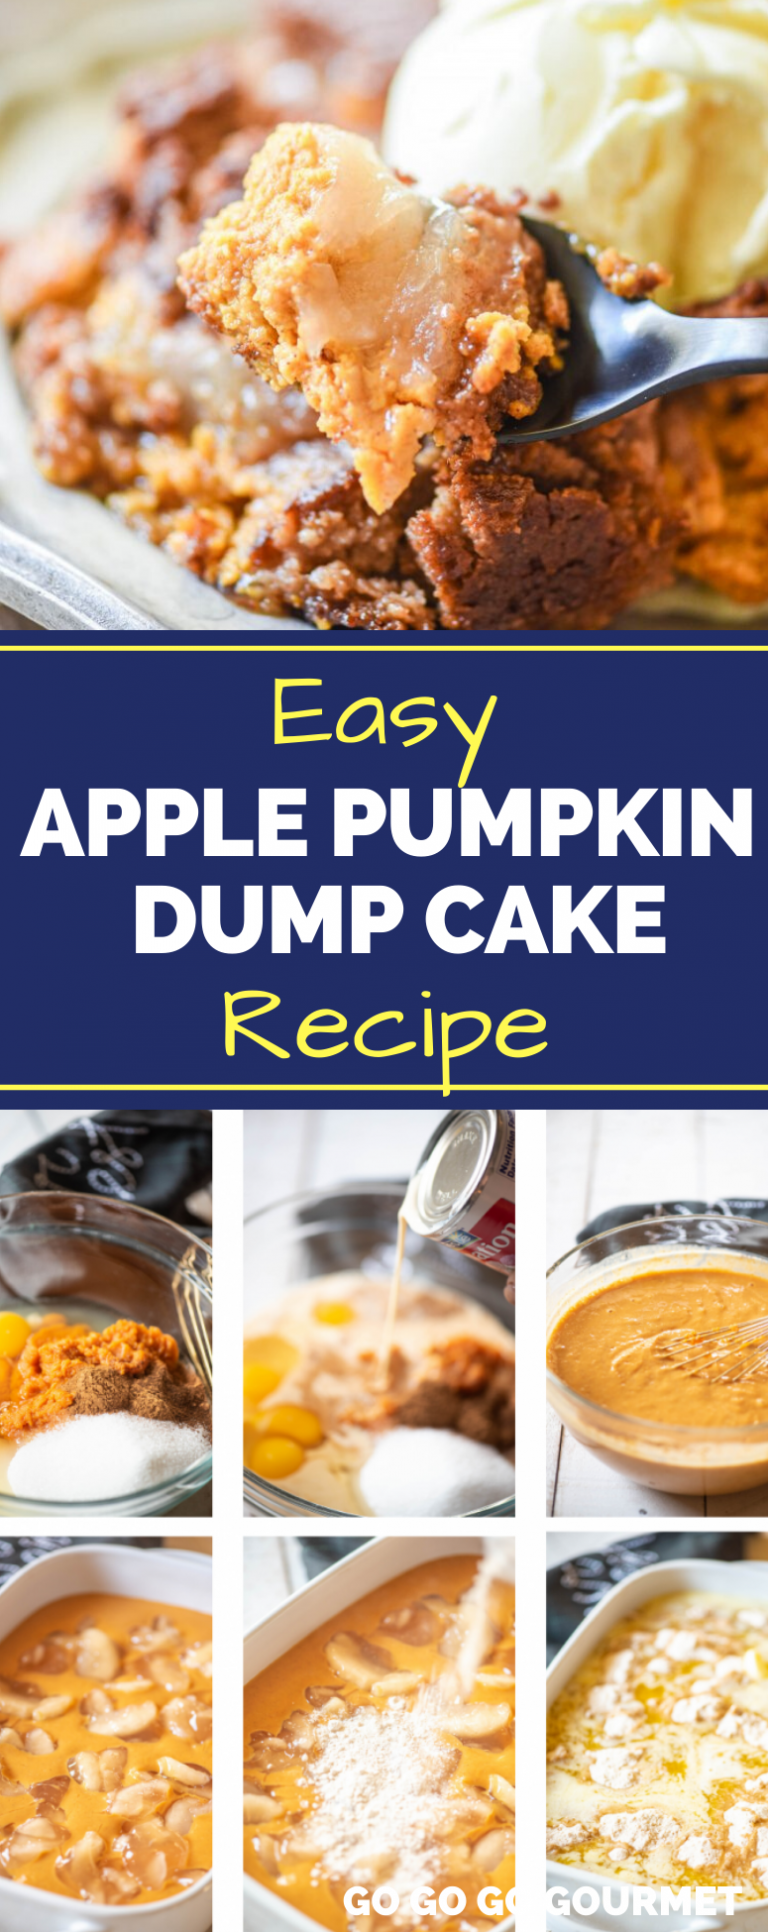 This easy Apple Pumpkin Dump Cake recipe is just what you need this fall! It's an easy dessert with only a few ingredients and 10 minutes of work! It might even be better than the Pioneer Woman recipe! #gogogogourmet #applepumpkindumpcake #dumpcakerecipes #pumpkinrecipes #falldesserts via @gogogogourmet